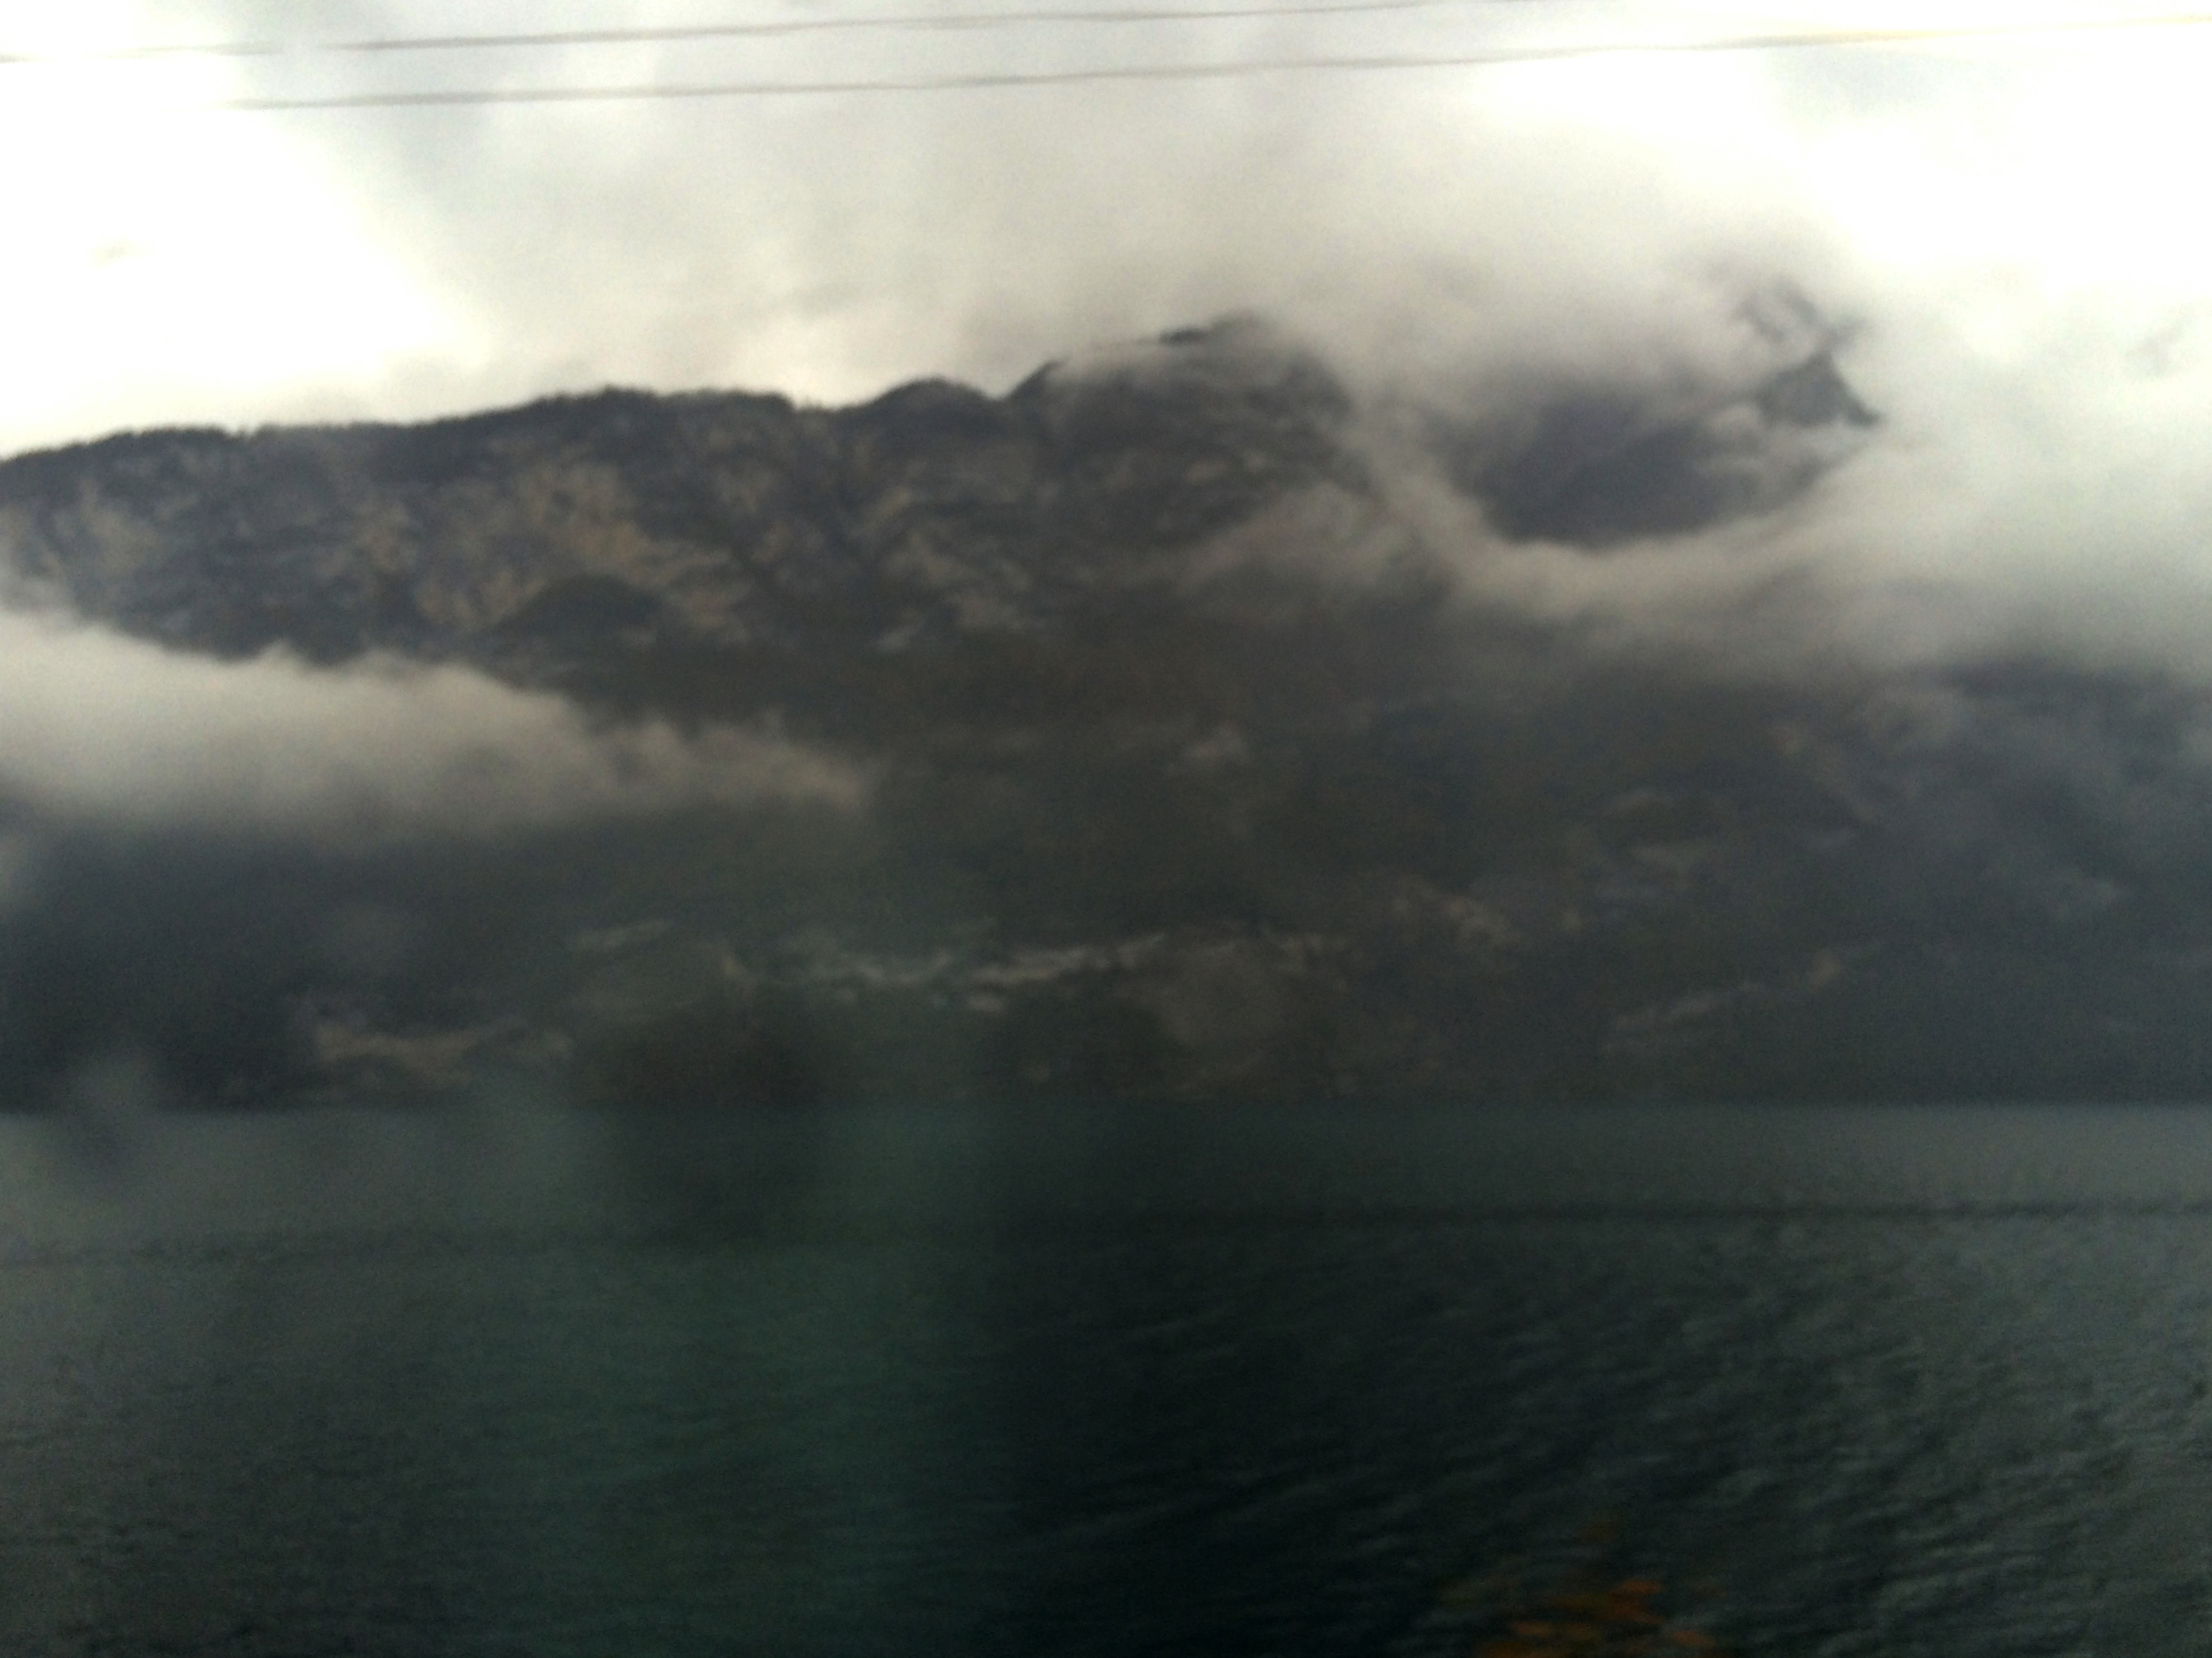 Mountains, clouds,and deep blue waters.